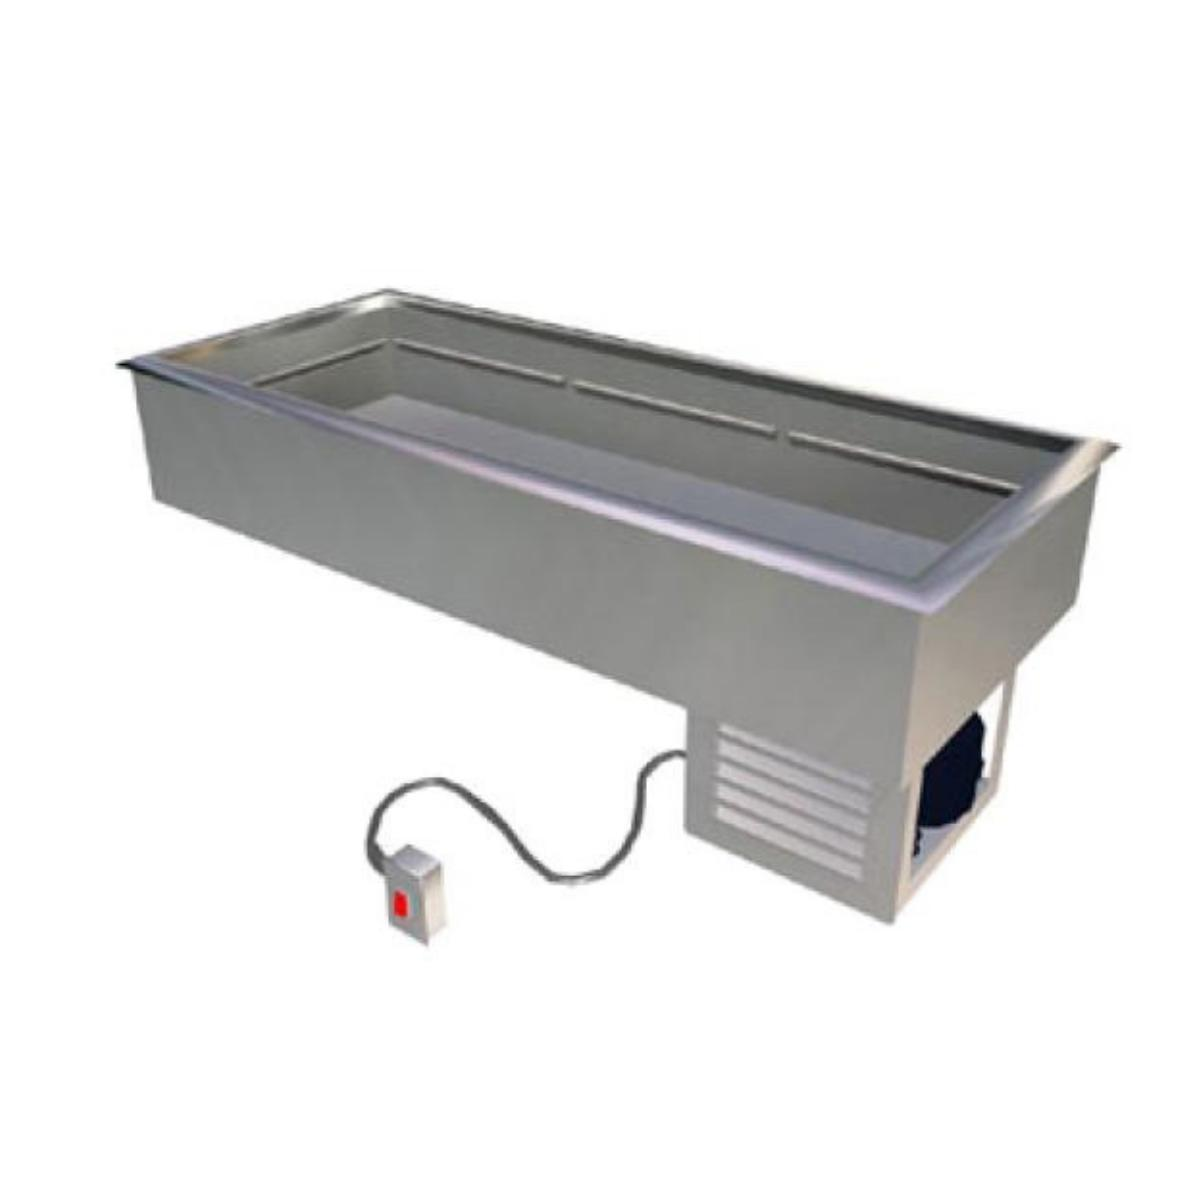 Duke ADI-5MD-N7 Refrigerated Drop-In Cold Food Pan, 74-7/8